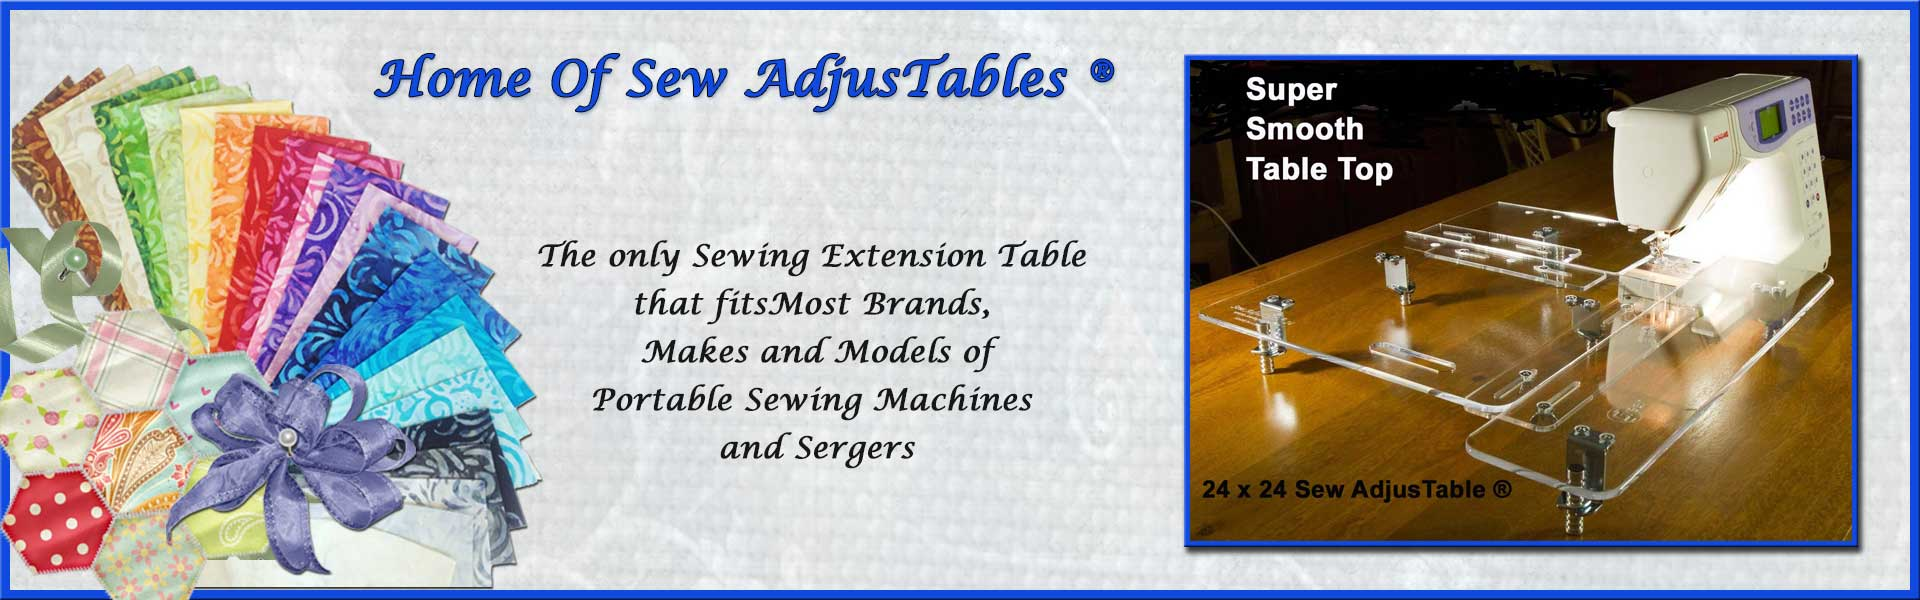 Home of the Sew AdjusTable ®